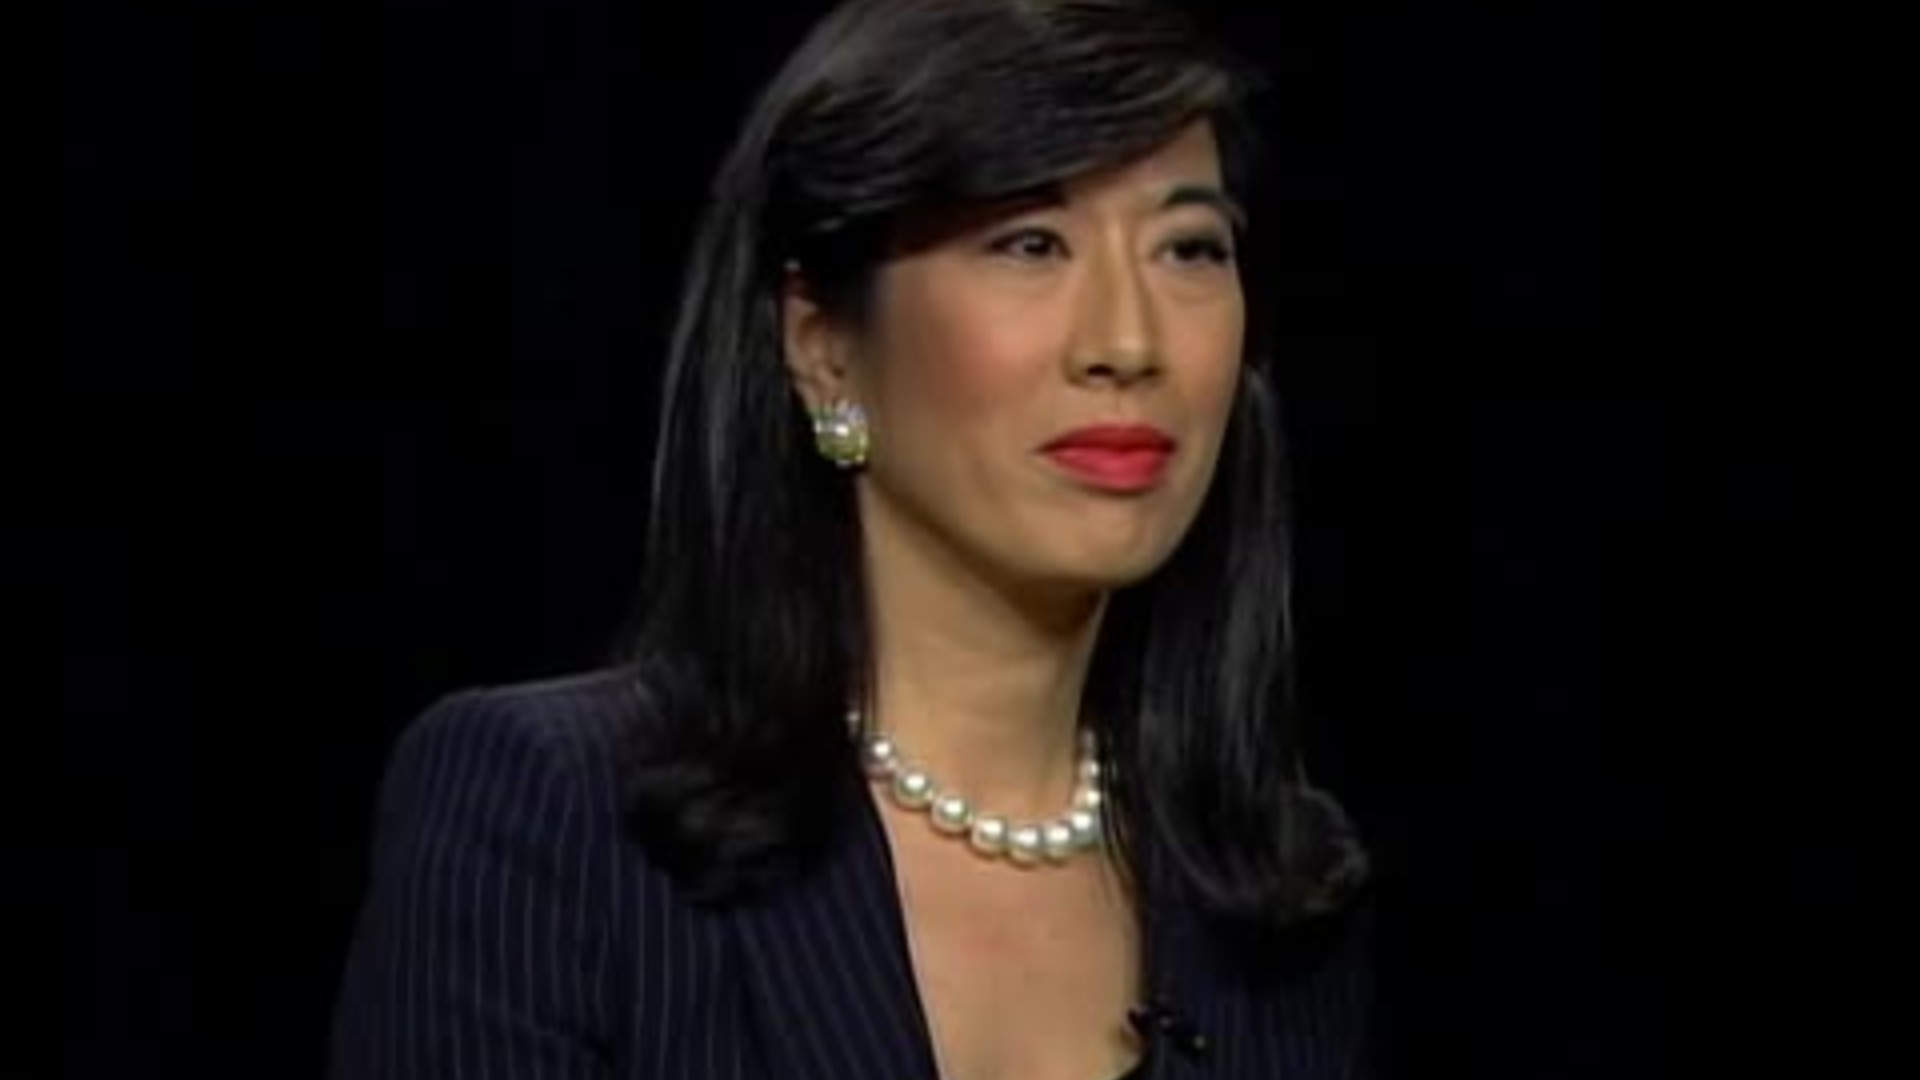 andrea jungs case Andrea jung: empowering avon women (a) case solution,andrea jung: empowering avon women (a) case analysis, andrea jung: empowering avon women (a) case study solution, in october 2005, andrea jung to cope with a 30% decline in stock prices avon .